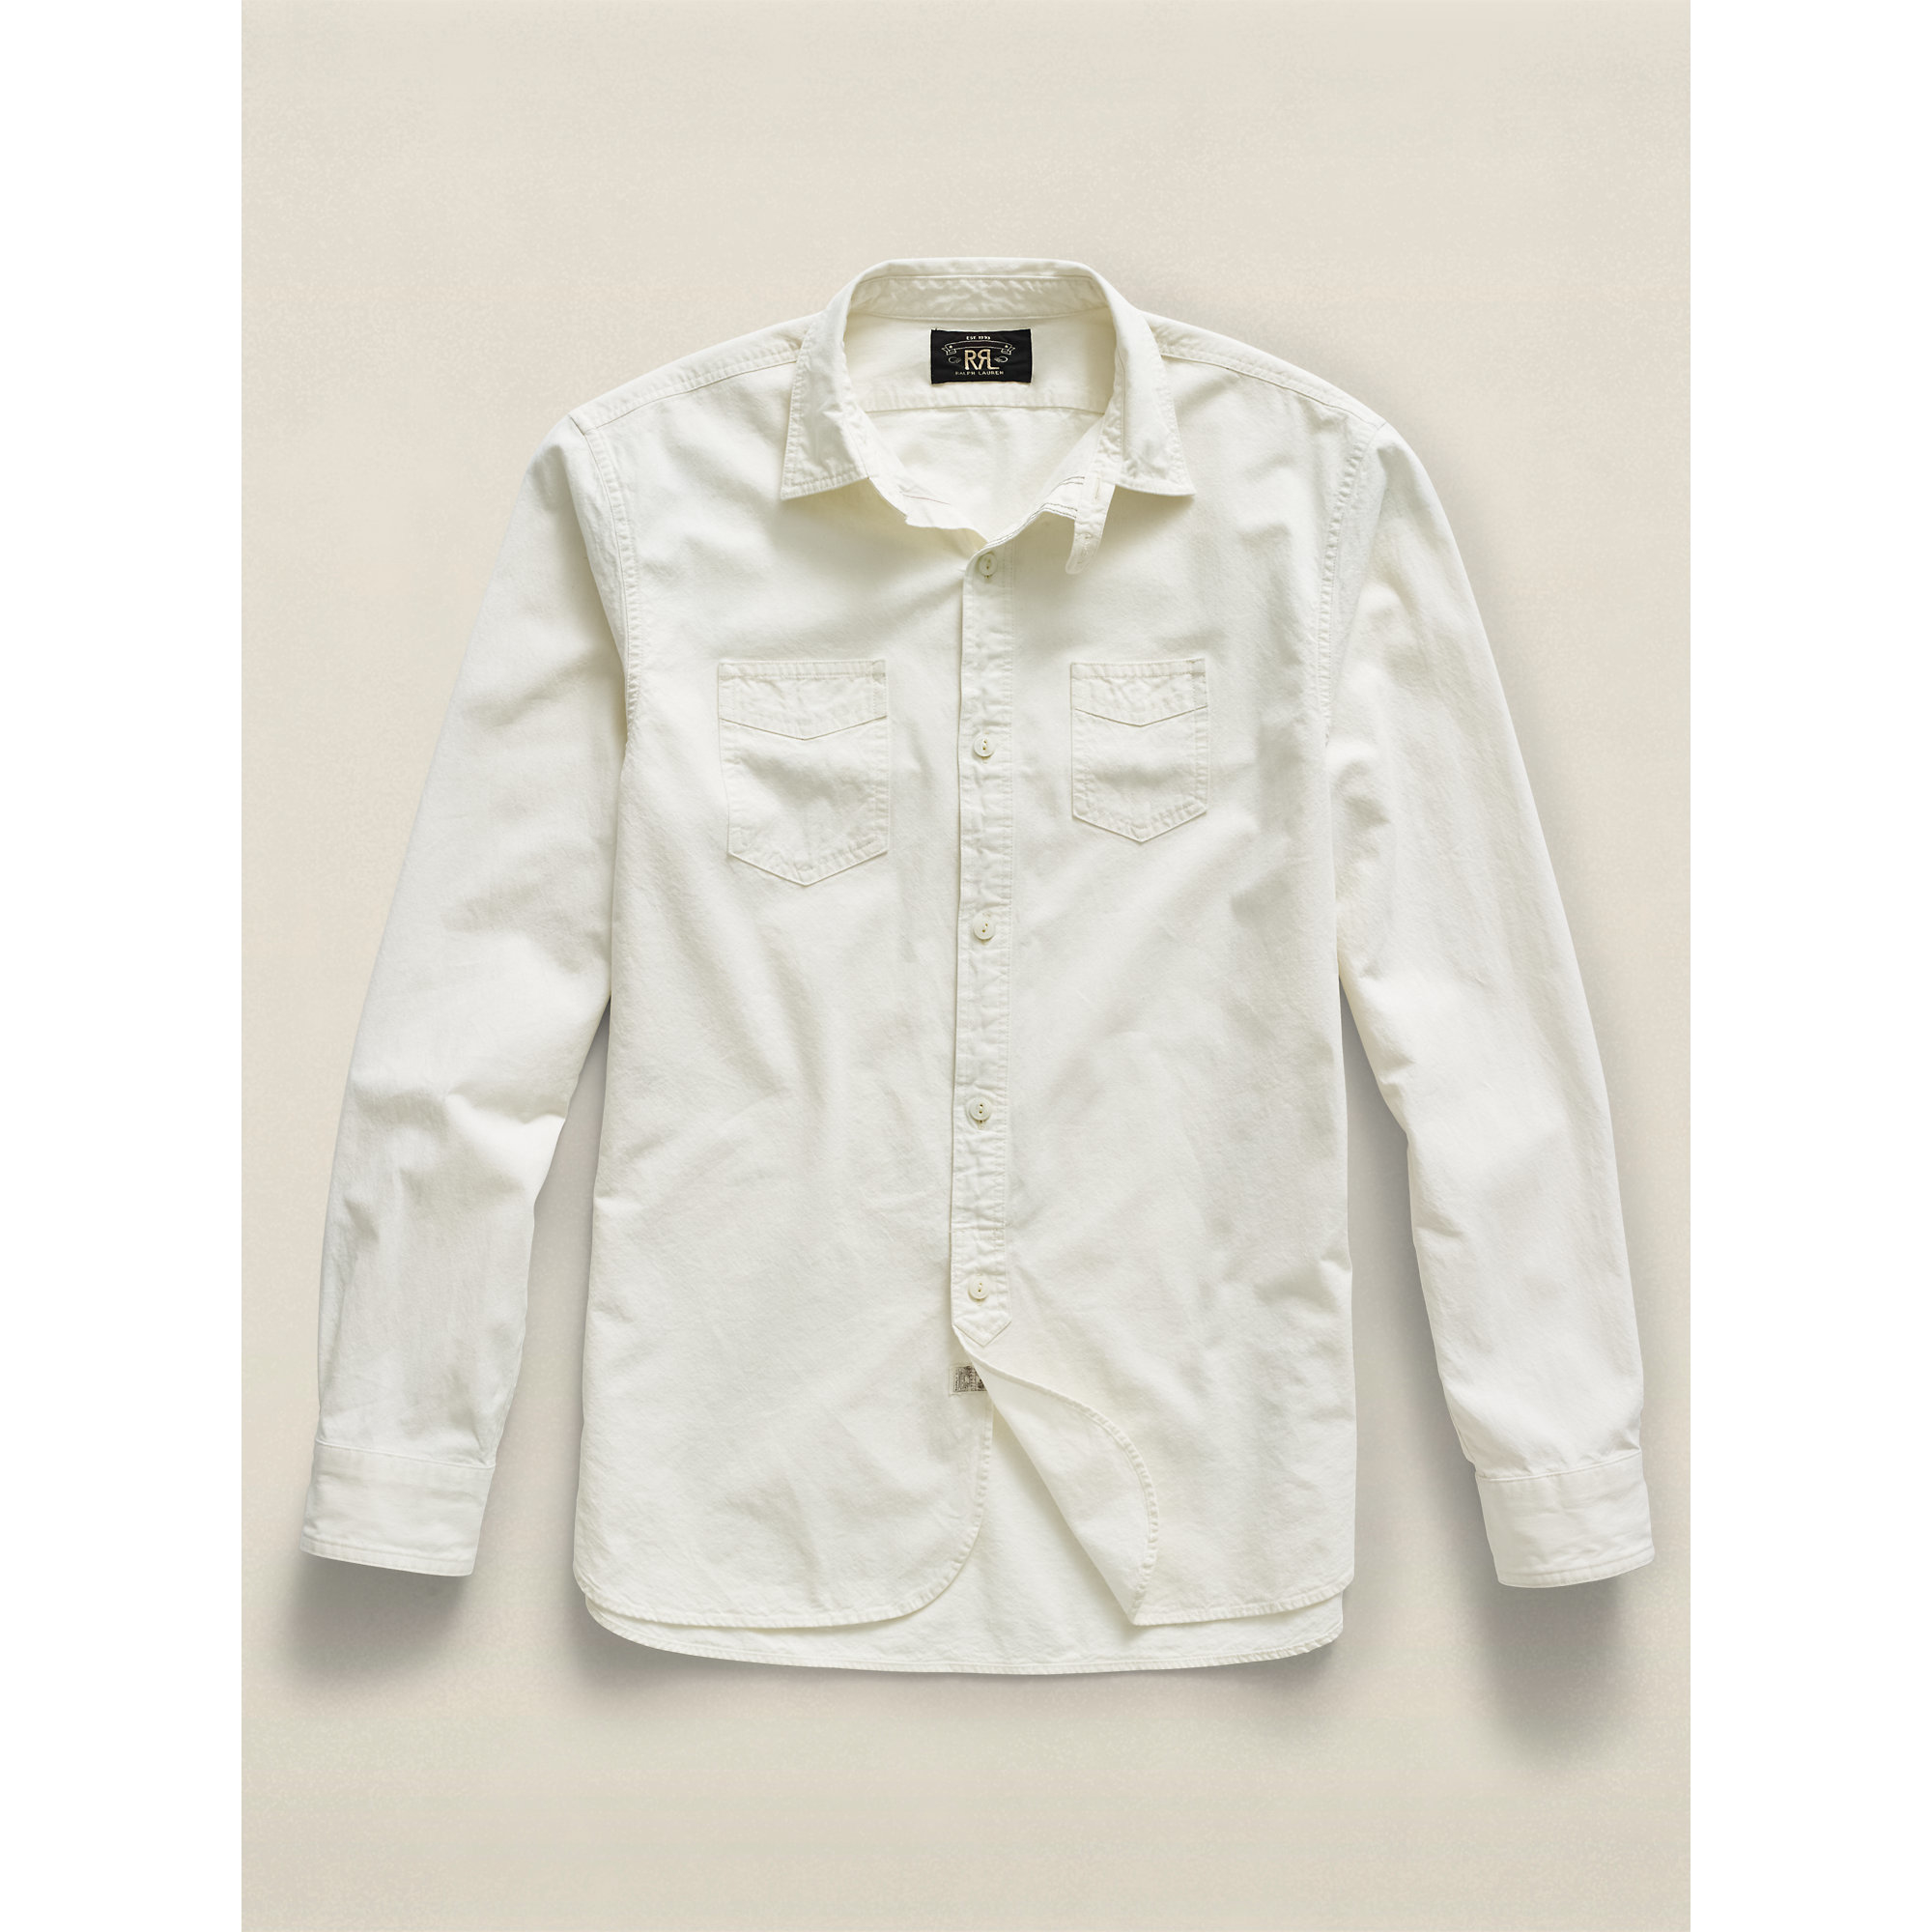 Rrl cotton chambray workshirt in white for men lyst for White cotton work shirts